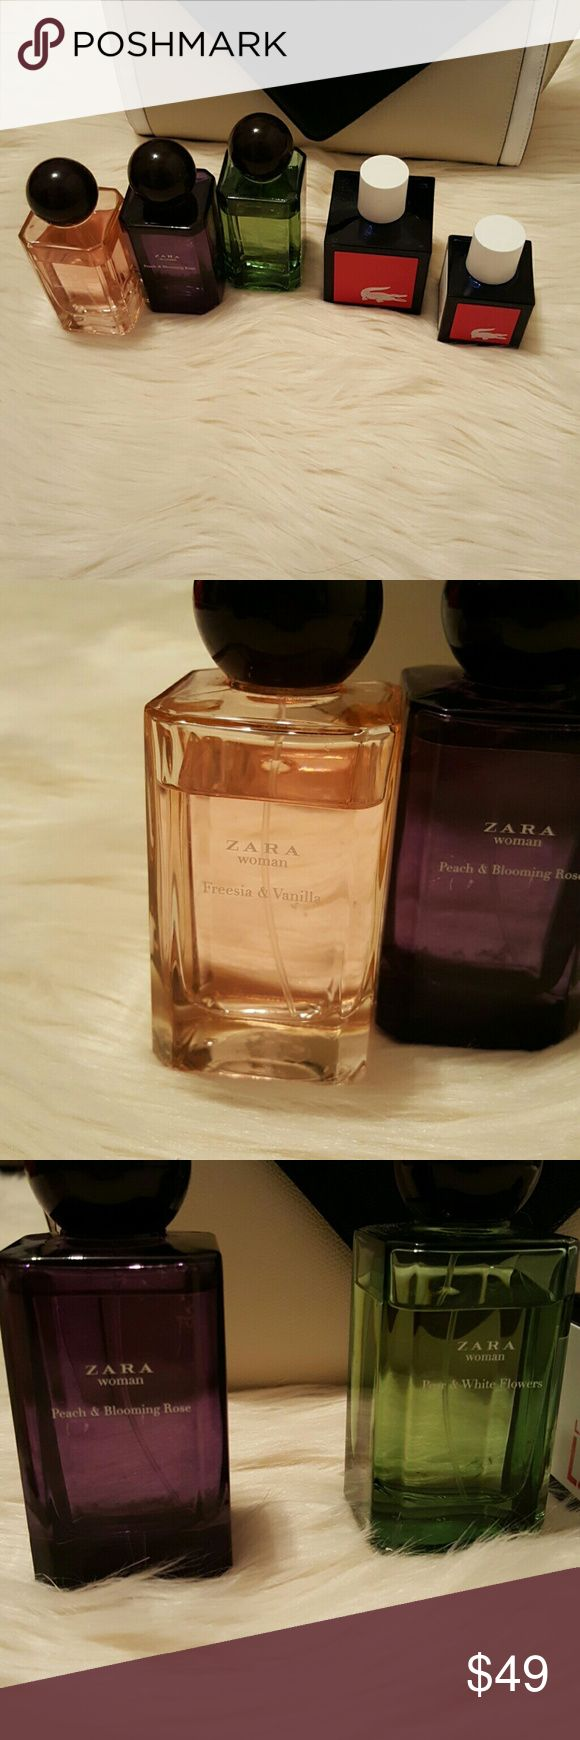 Zara women's perfume and Lacoste men's cologne Check out this great scents bundles for you and him! Zara women's pefume only used a few times! Great fruity flowery smells. -Freesia and Vanilla -Peach and white flowers -Peach and blooming rose Lacoste men's cologne -1 meduim size Live -1 small size Live Zara Other